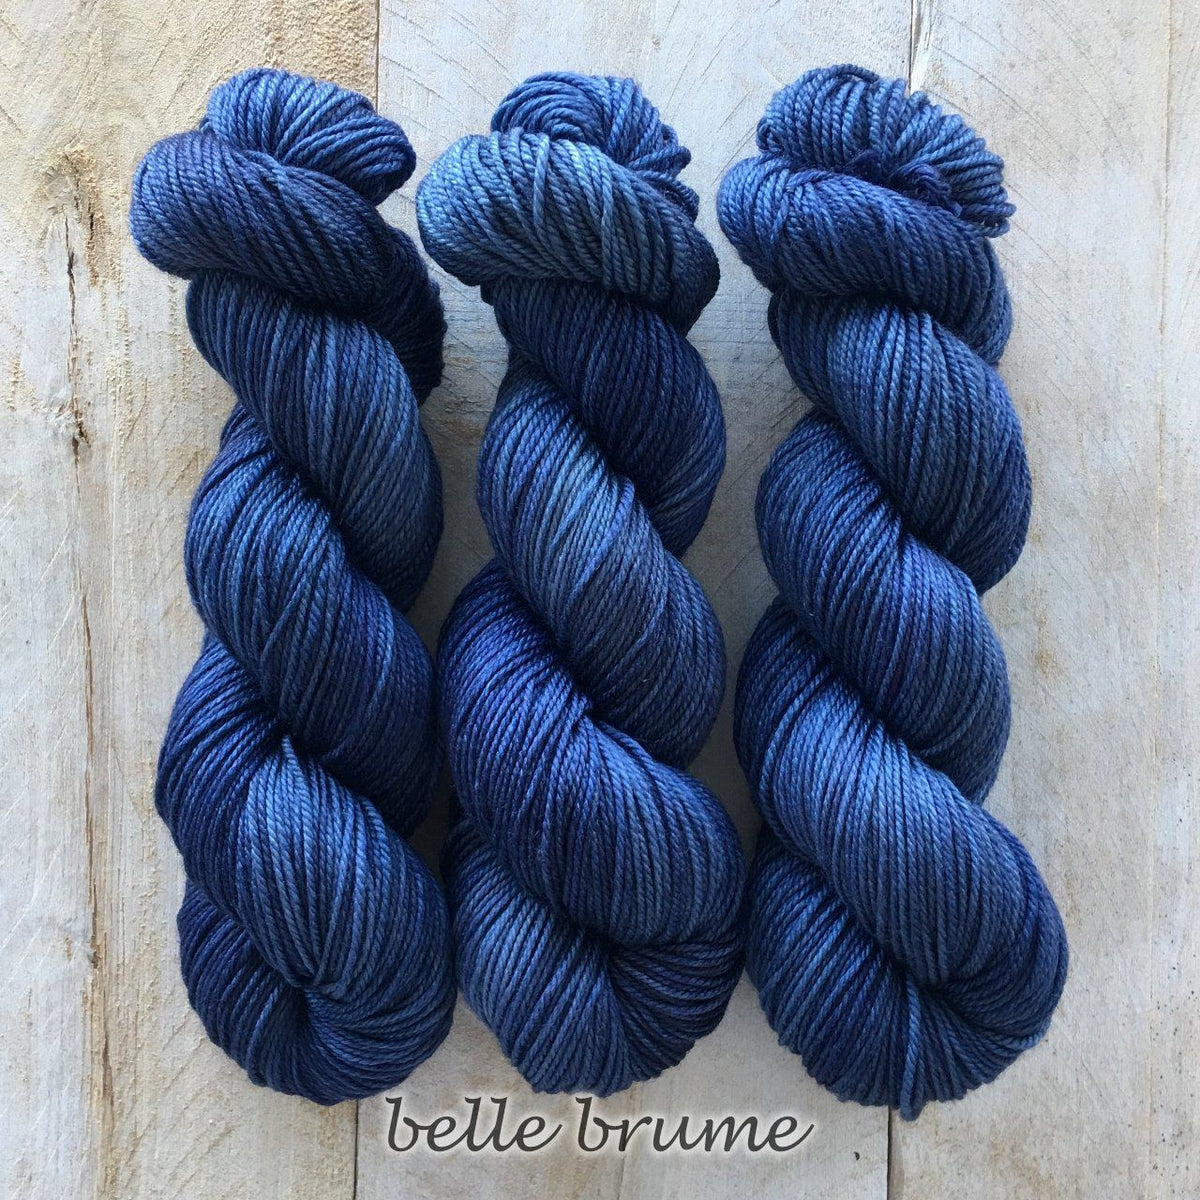 BELLE BRUME by Louise Robert Design | DK PURE hand-dyed semi-solid yarn